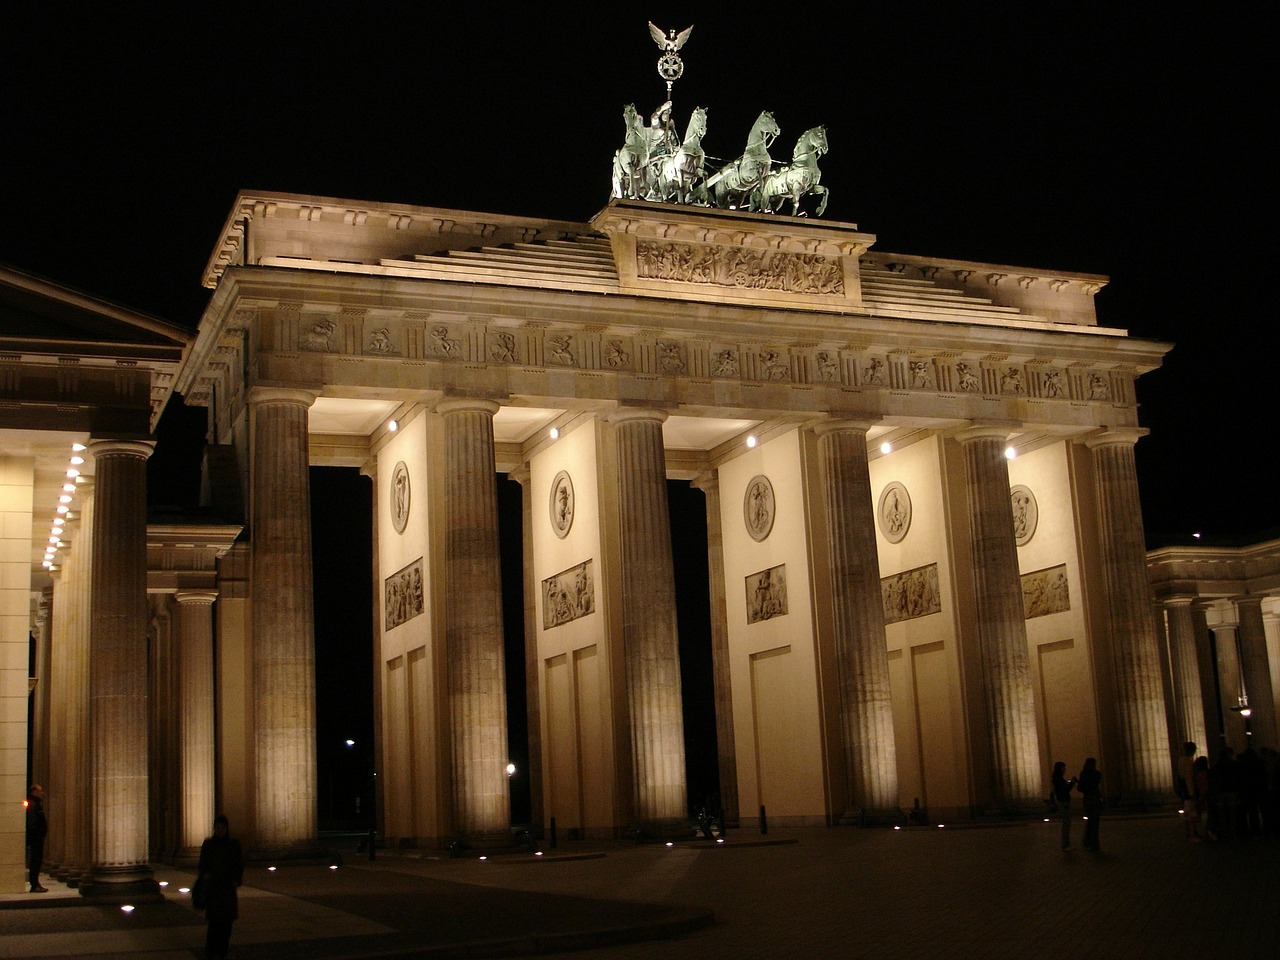 brandenburg gate,berlin,building,architecture,lighting,light,shadow,night,free pictures, free photos, free images, royalty free, free illustrations, public domain